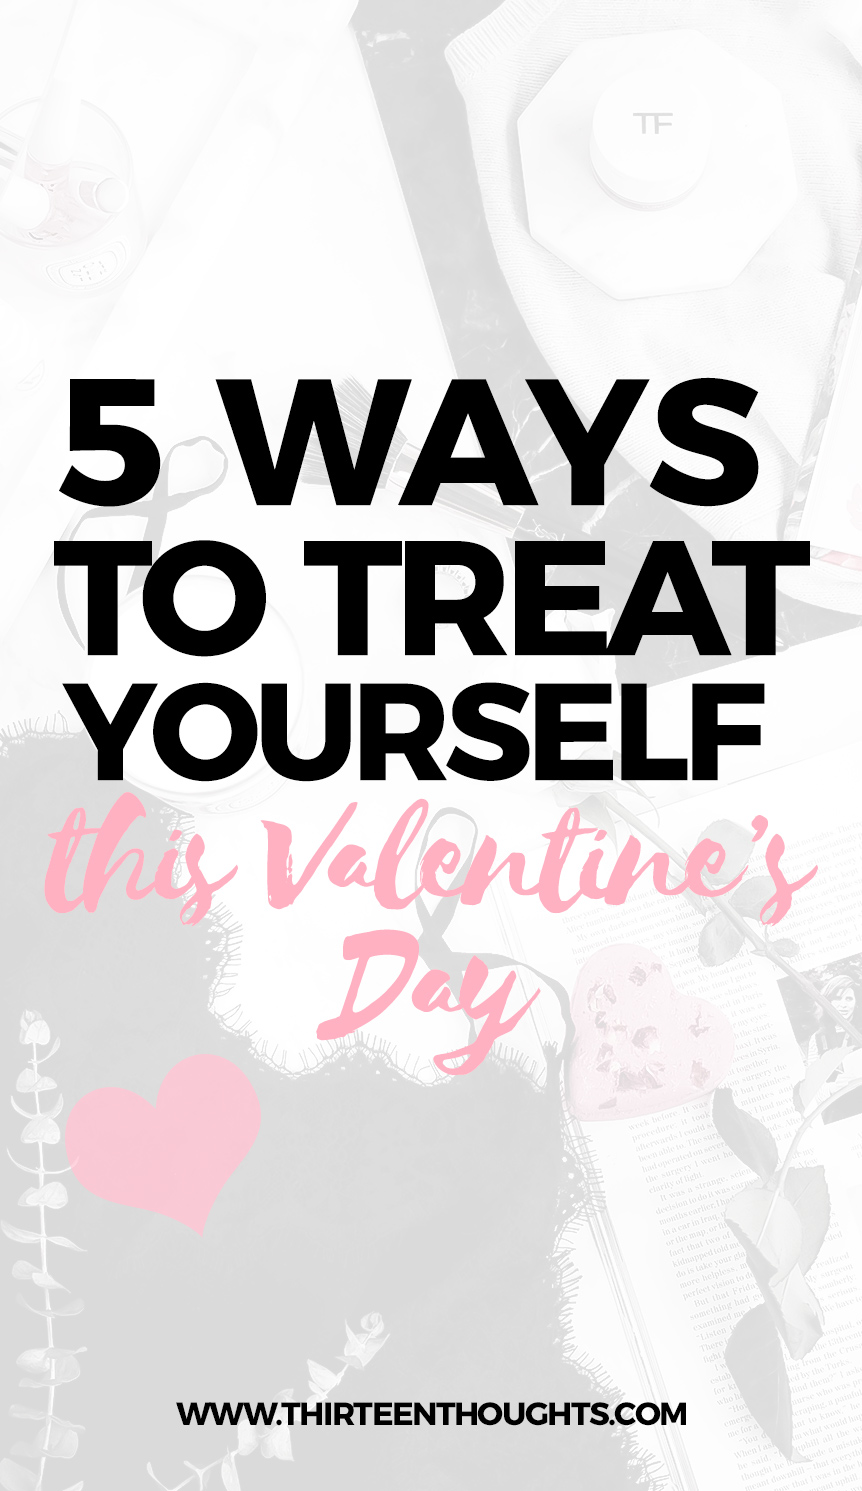 5 Ways to Treat Yourself this Valentine's Day